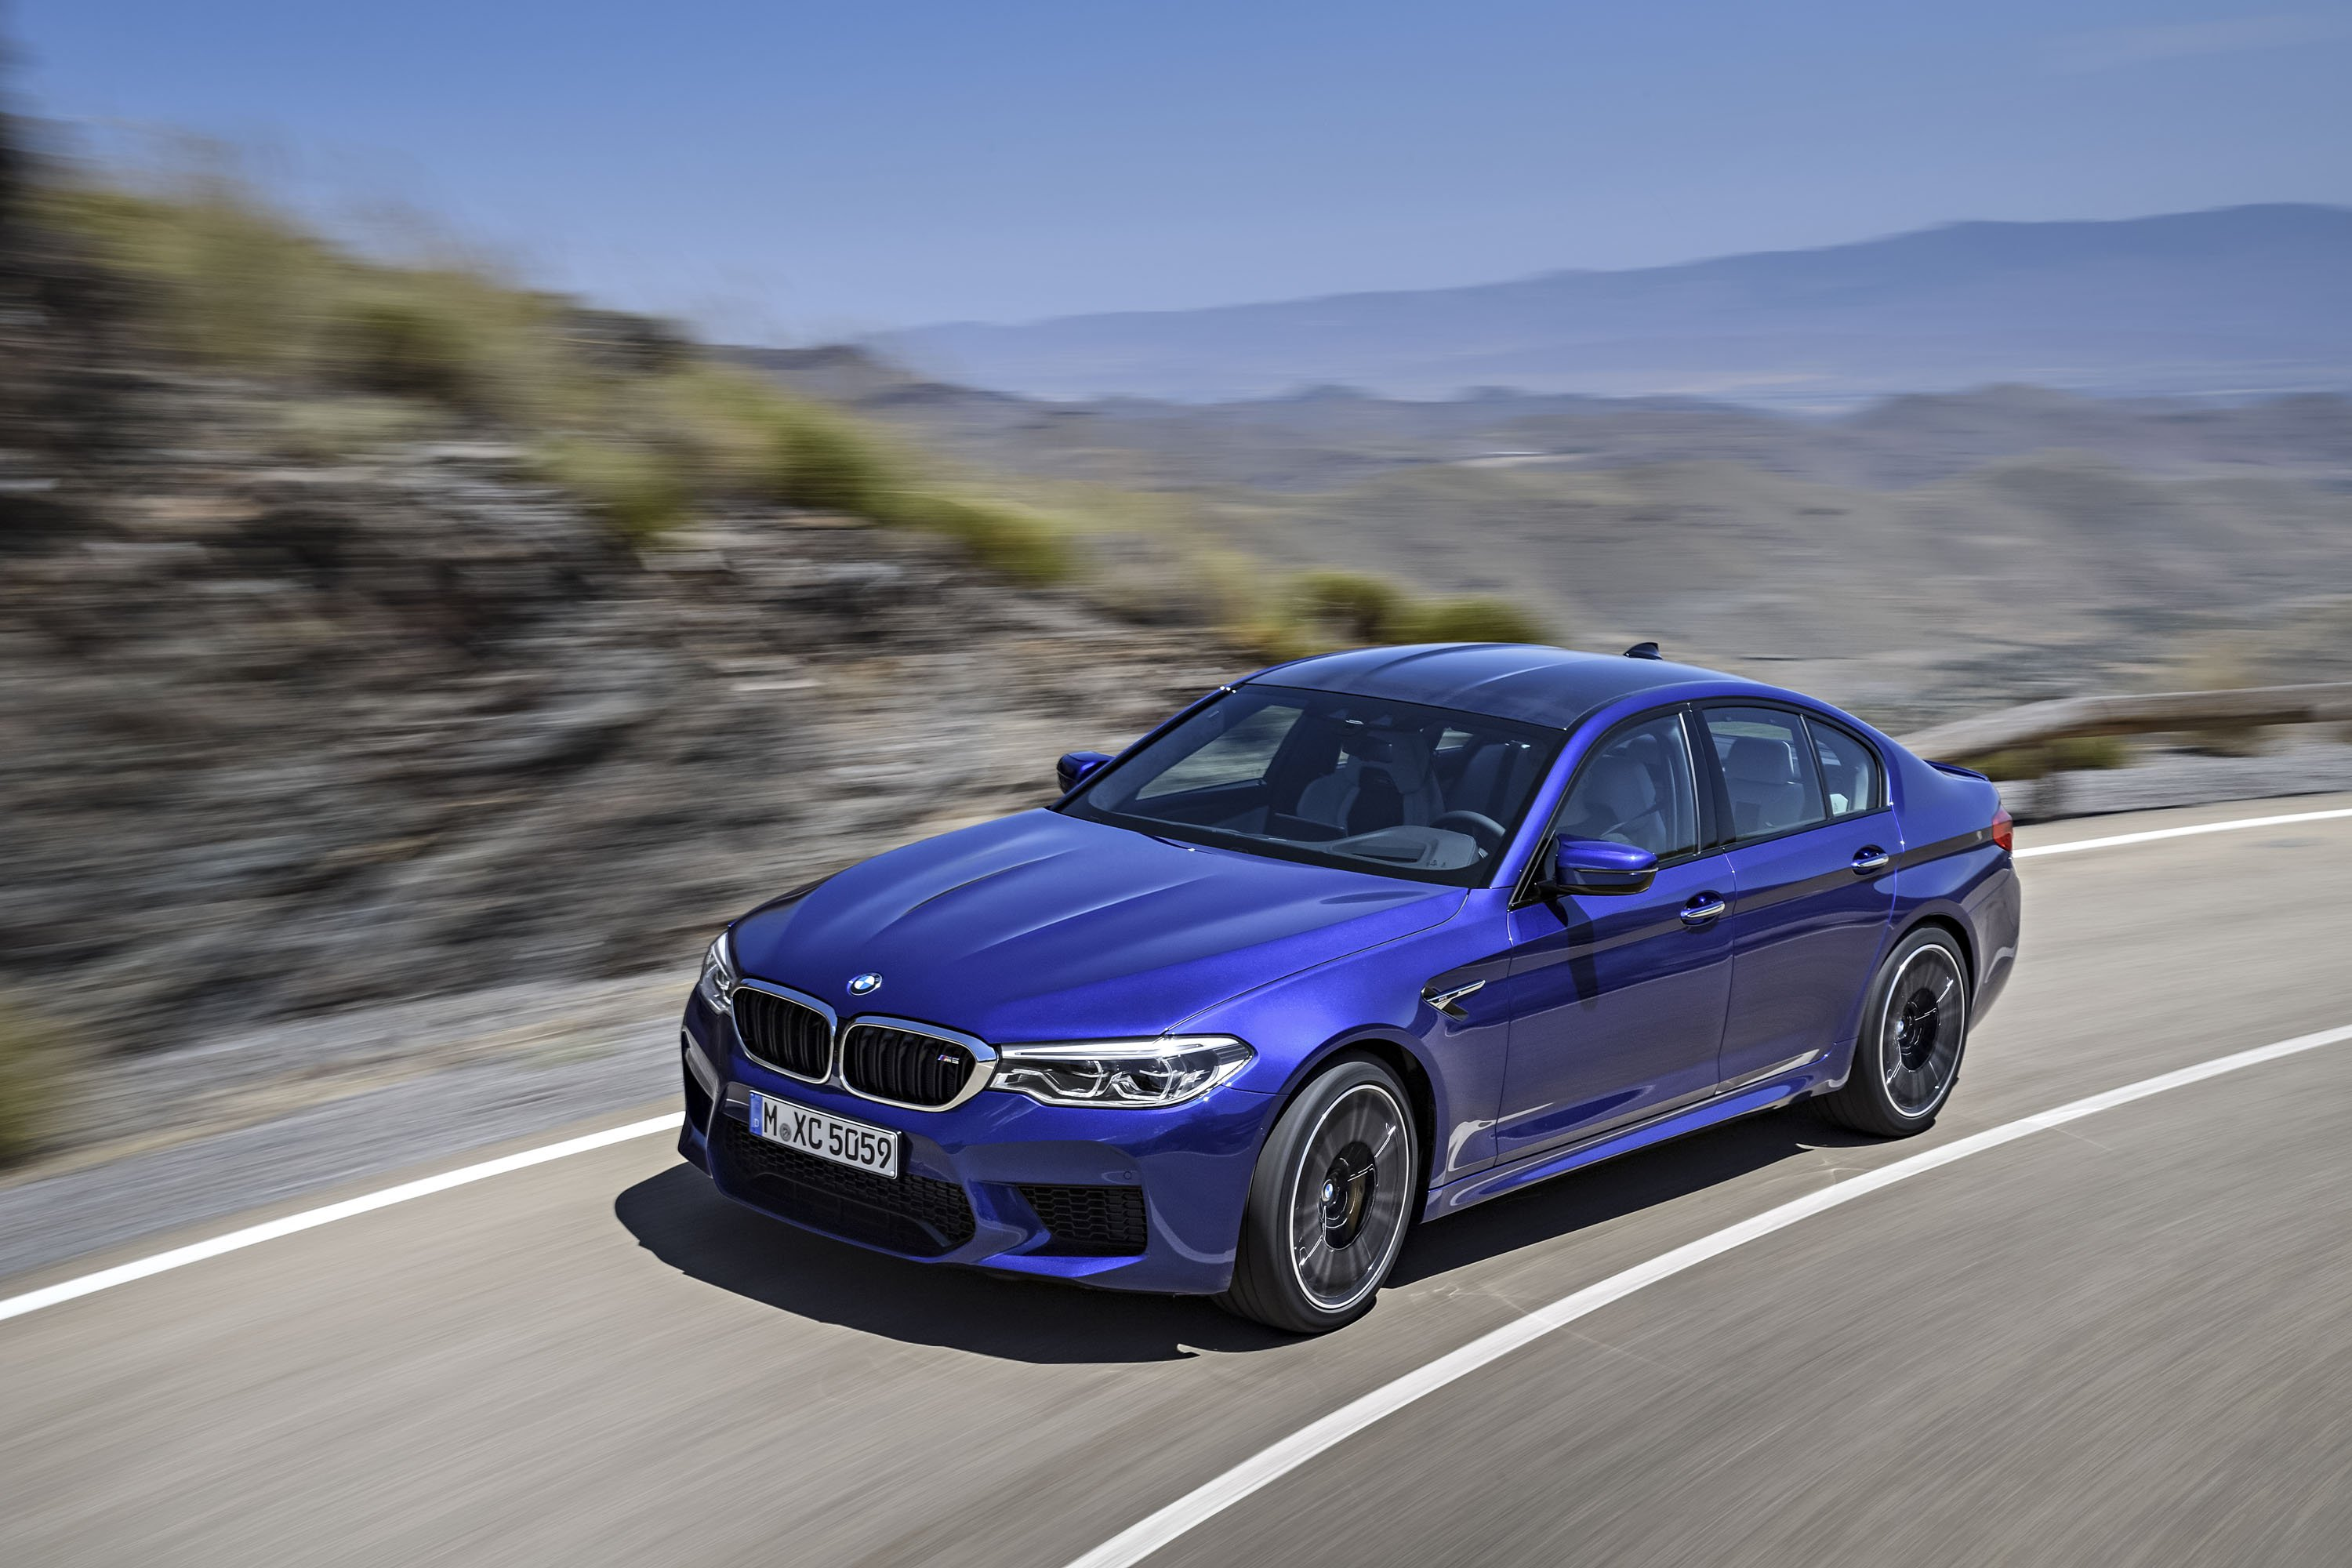 92 The Best 2020 BMW M5 Photos